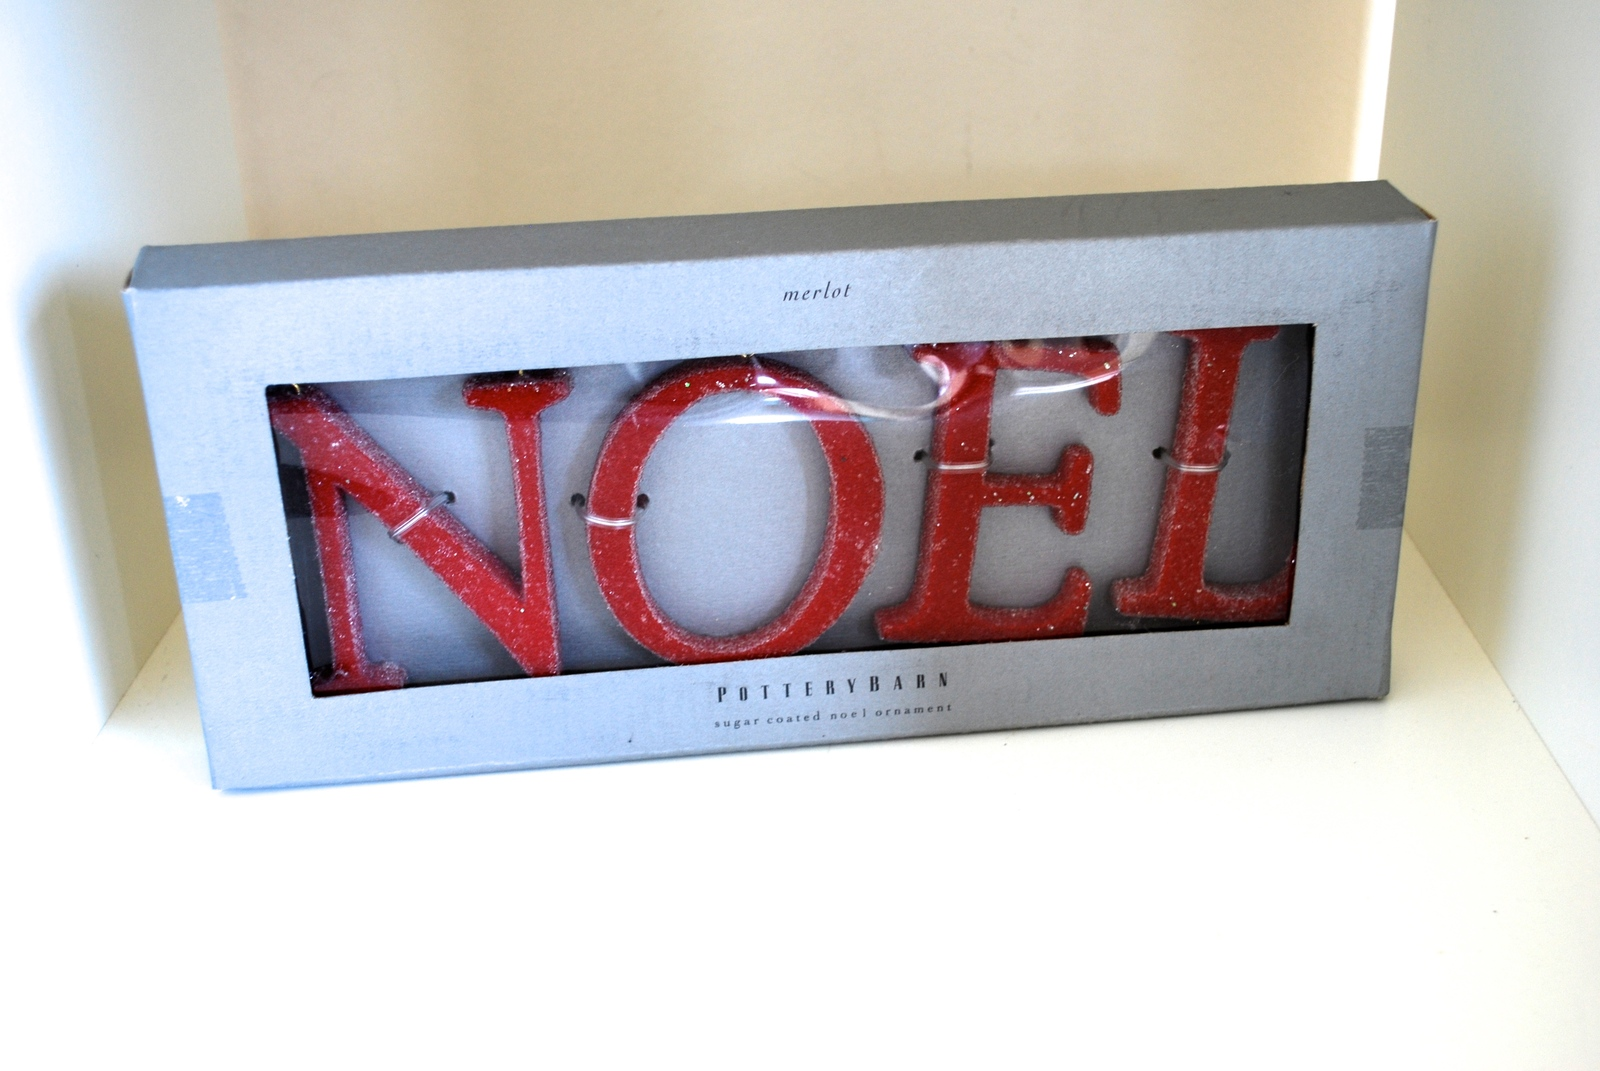 Pottery Barn Christmas Sugar Coated Noel Ornament